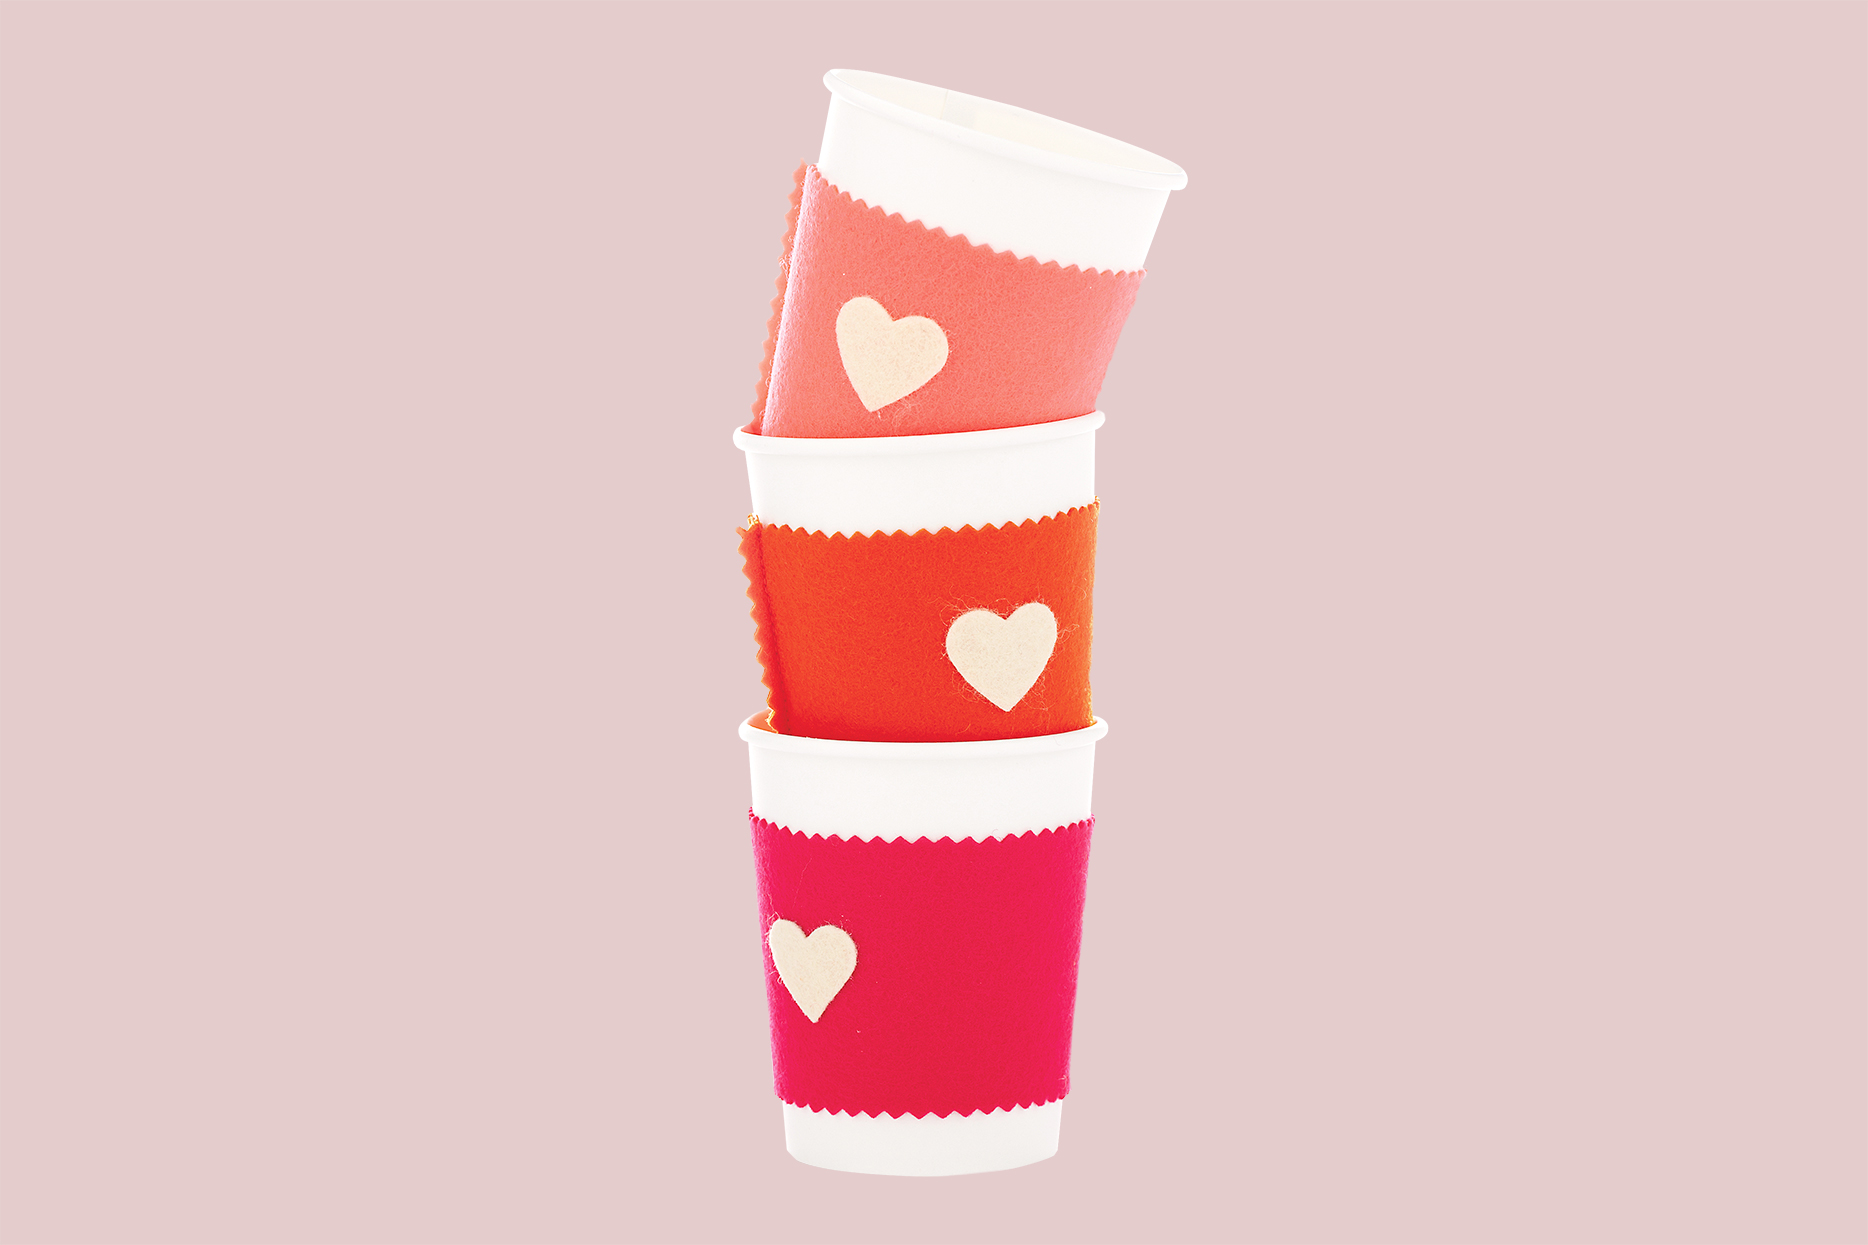 diy felt coffee cozies with hearts